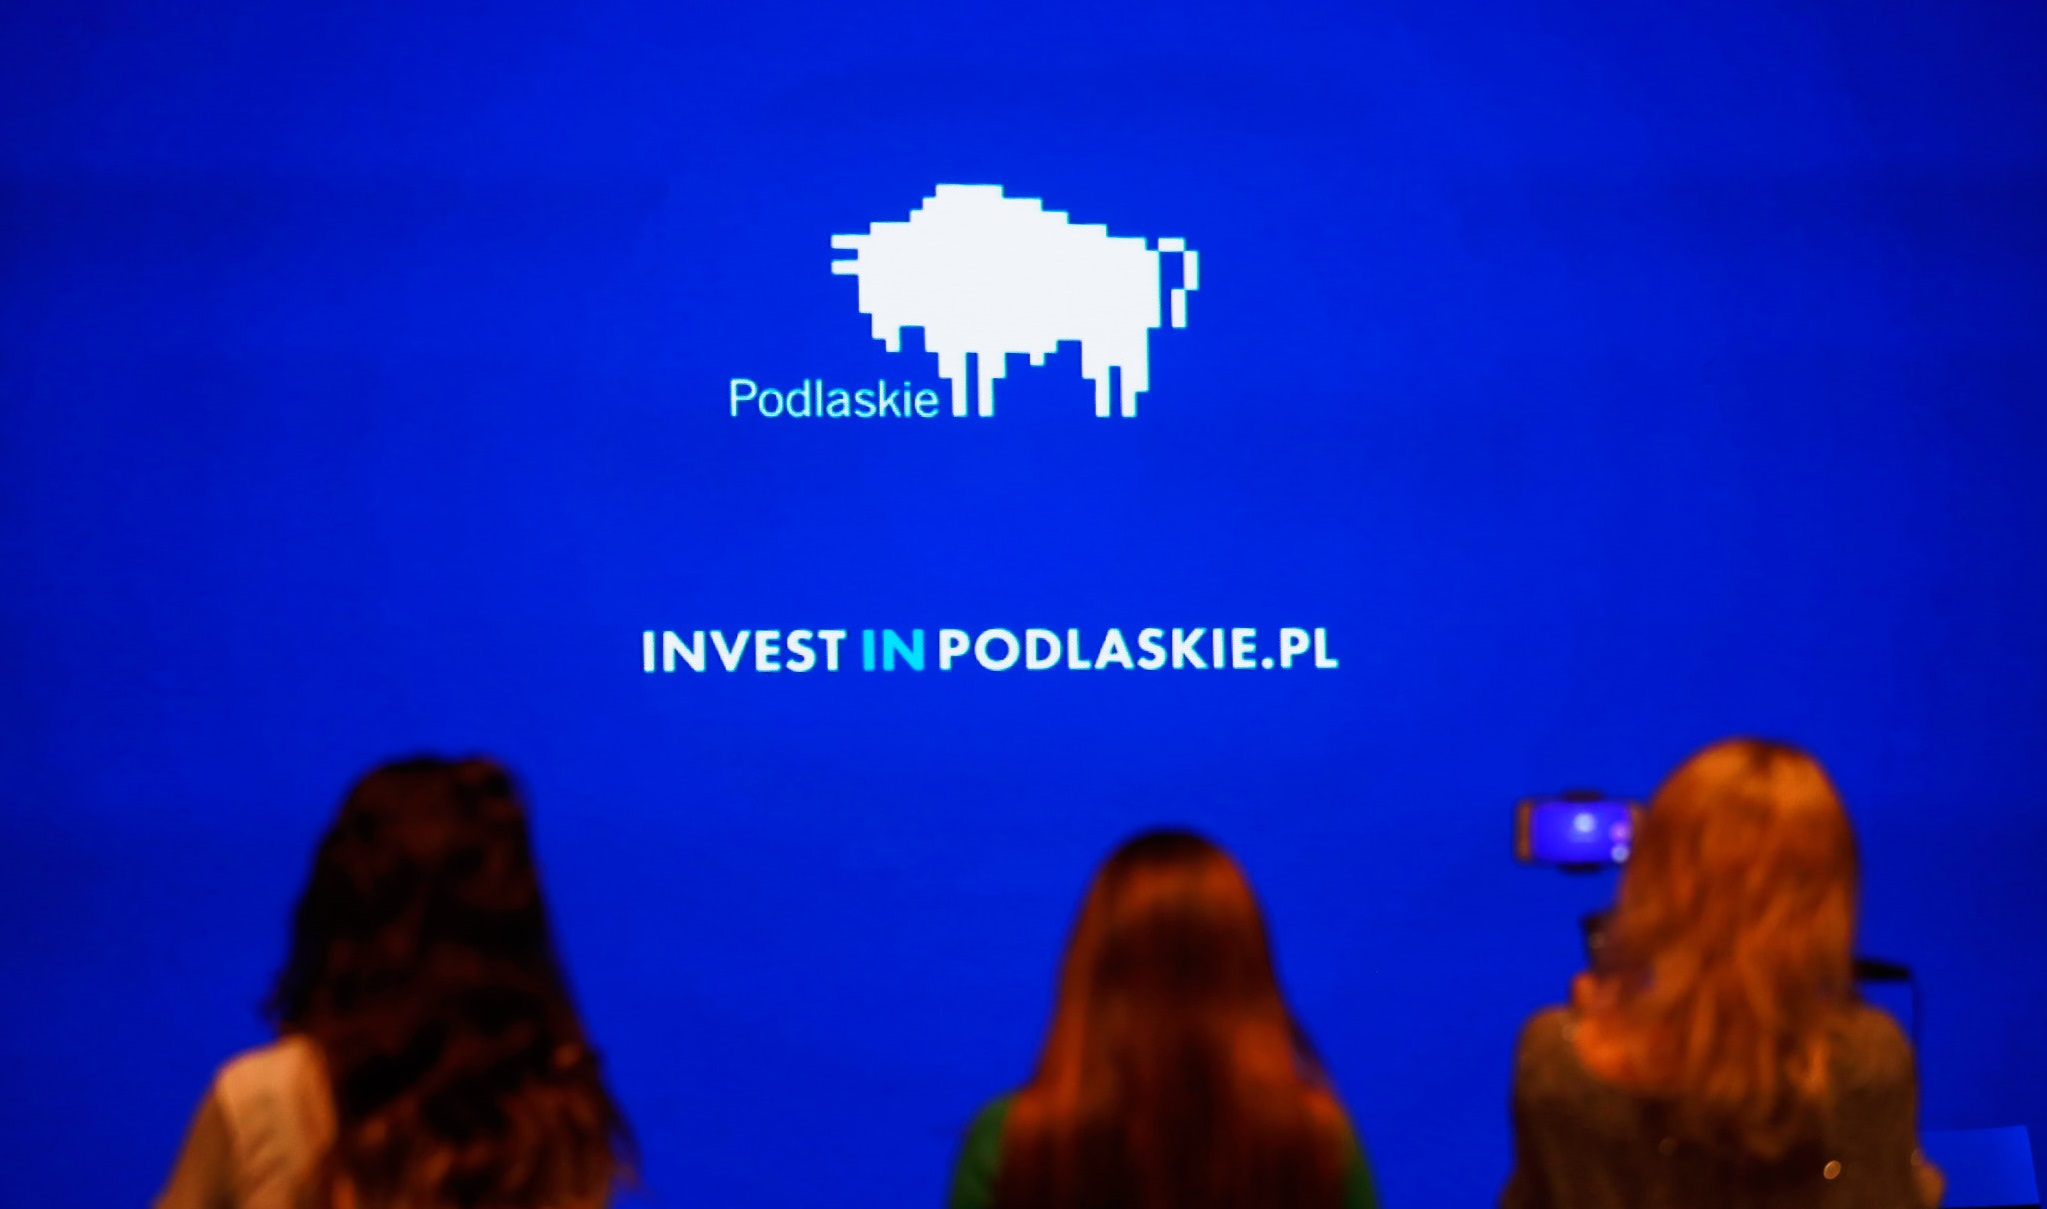 New opening and new quality in the economic promotion of the Podlaskie region